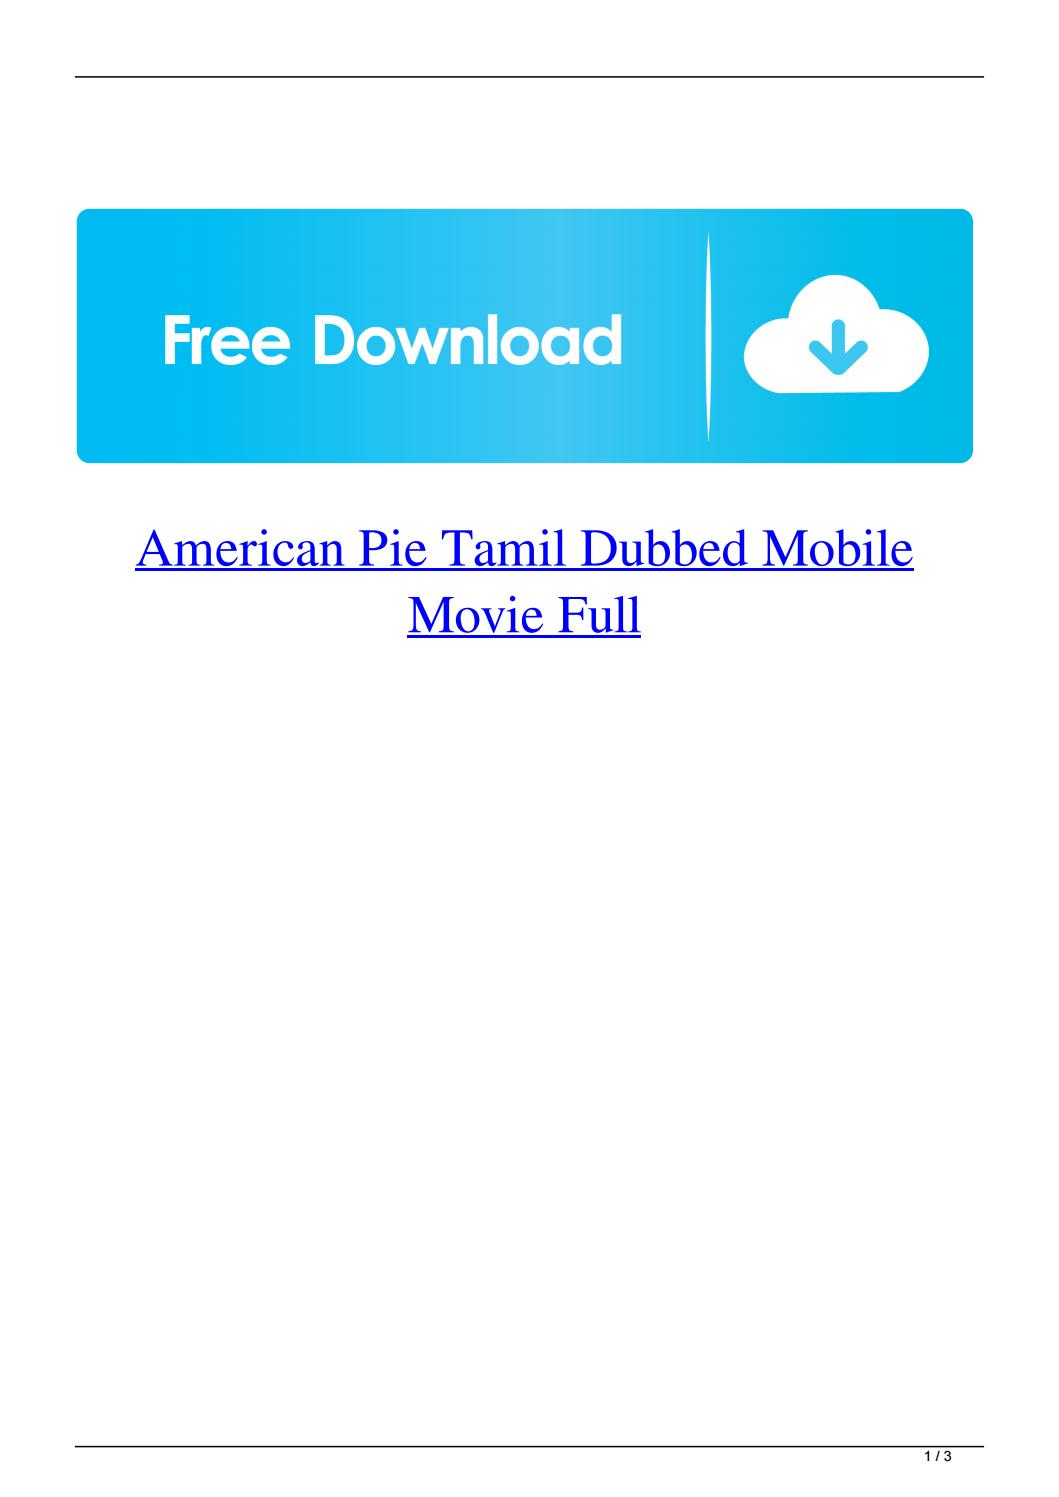 American Pie Tamil Dubbed Image By Rainhelmus2ge5